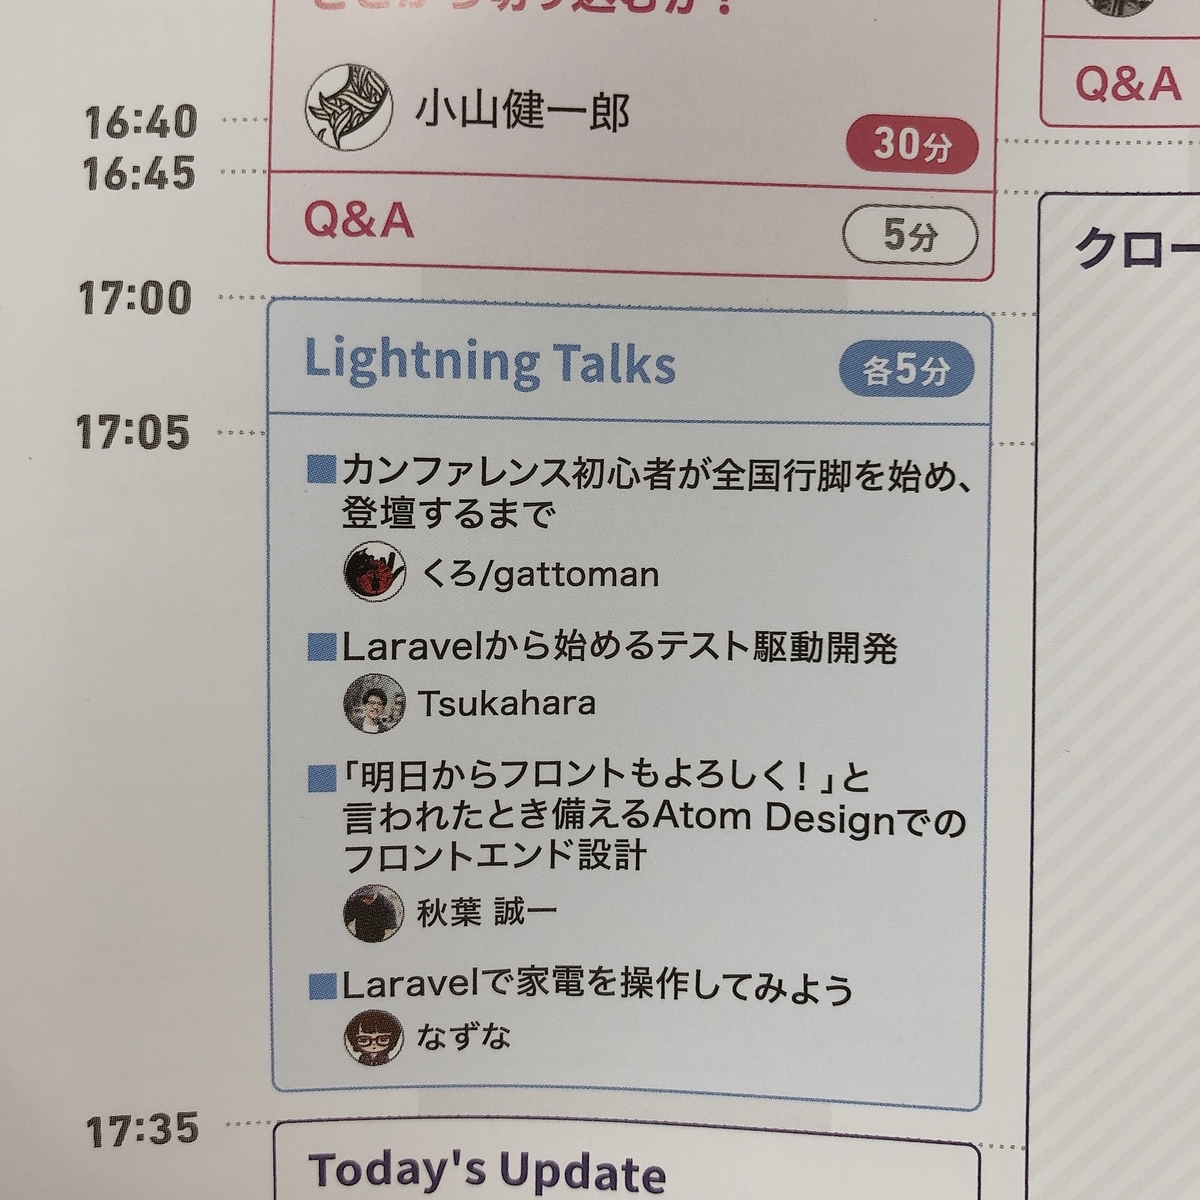 PHPerKaigi2020 LightningTalks